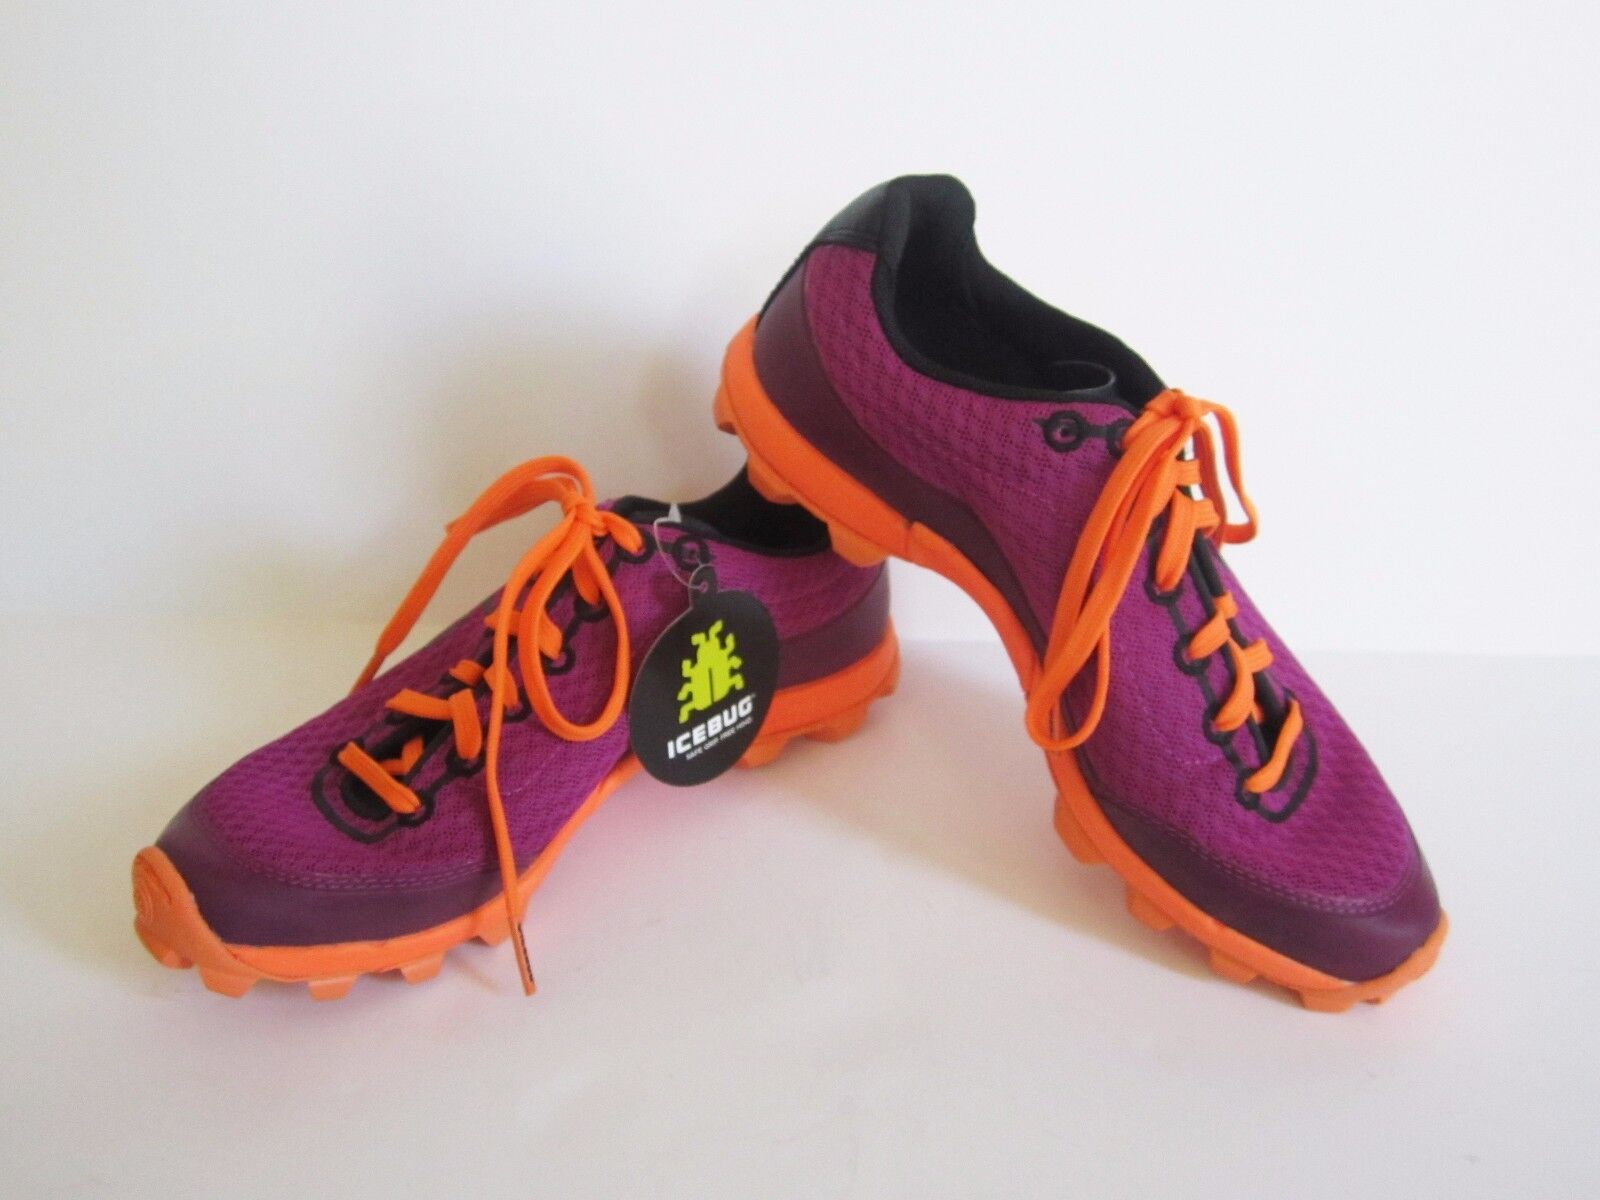 Icebug Womens Acceleritas5 W RB9X Magenta Neon orange Running shoes 5.5 New  TL